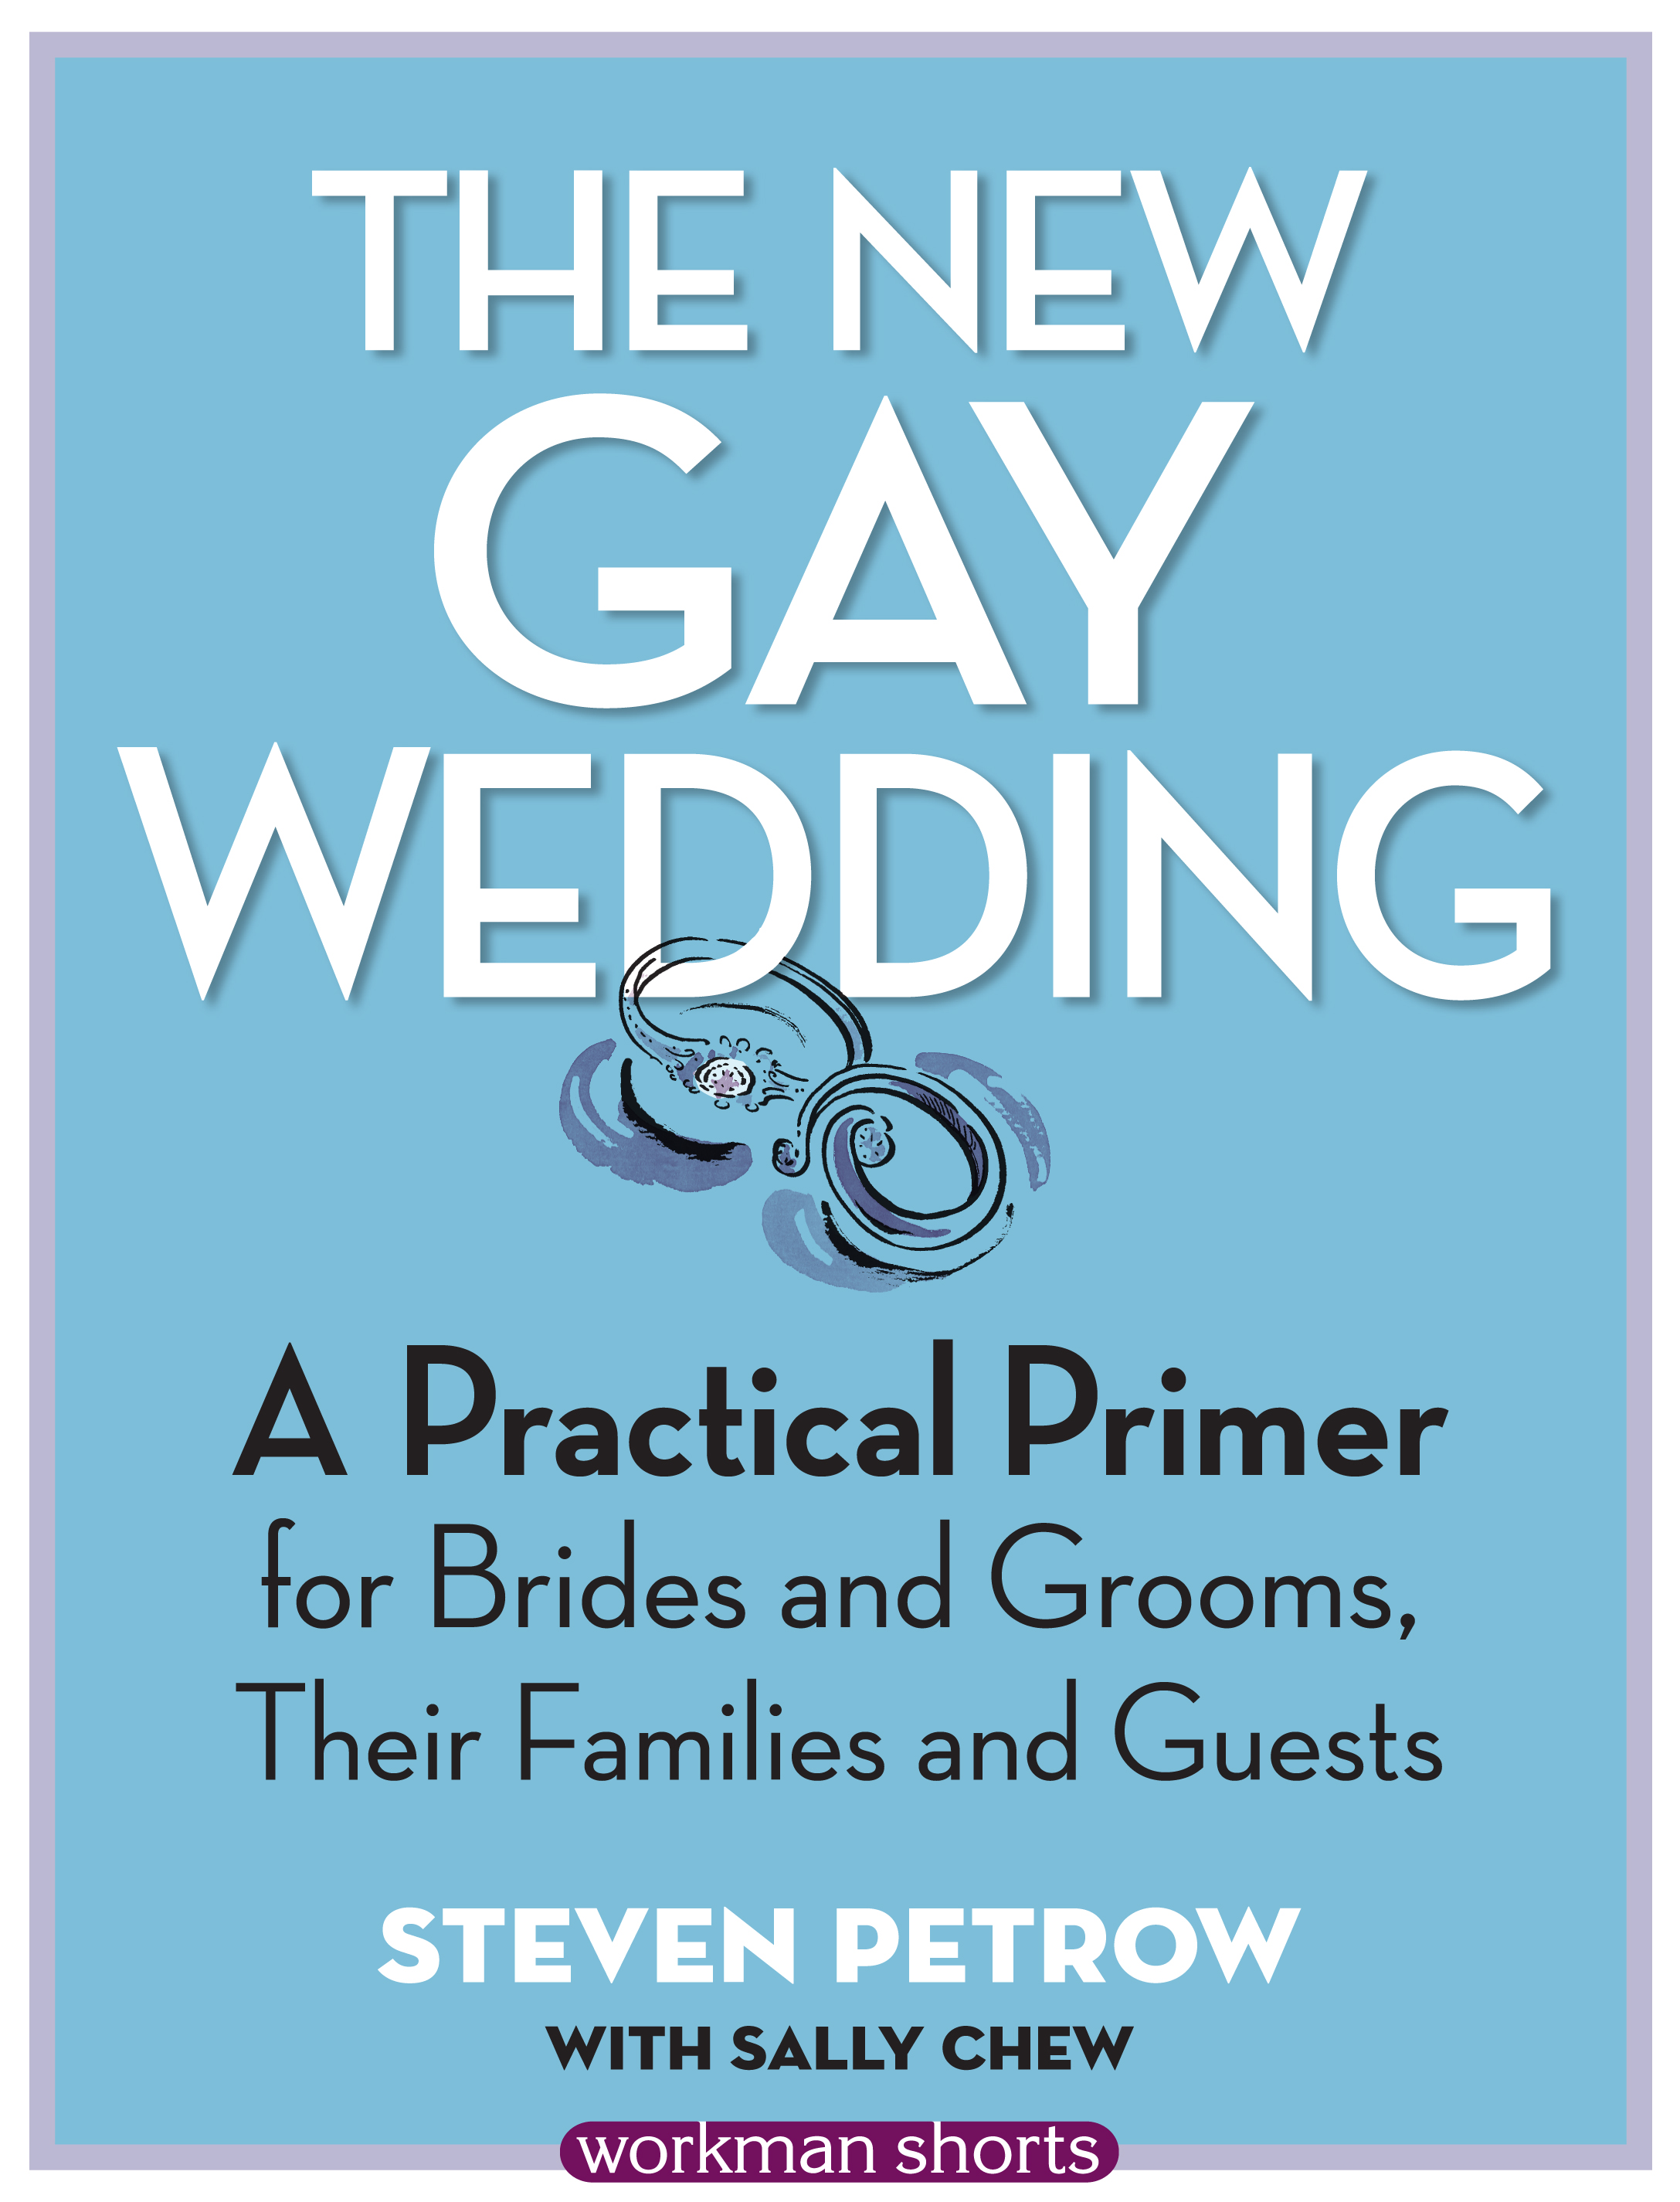 The New Gay Wedding An Exclusive Excerpt HuffPost